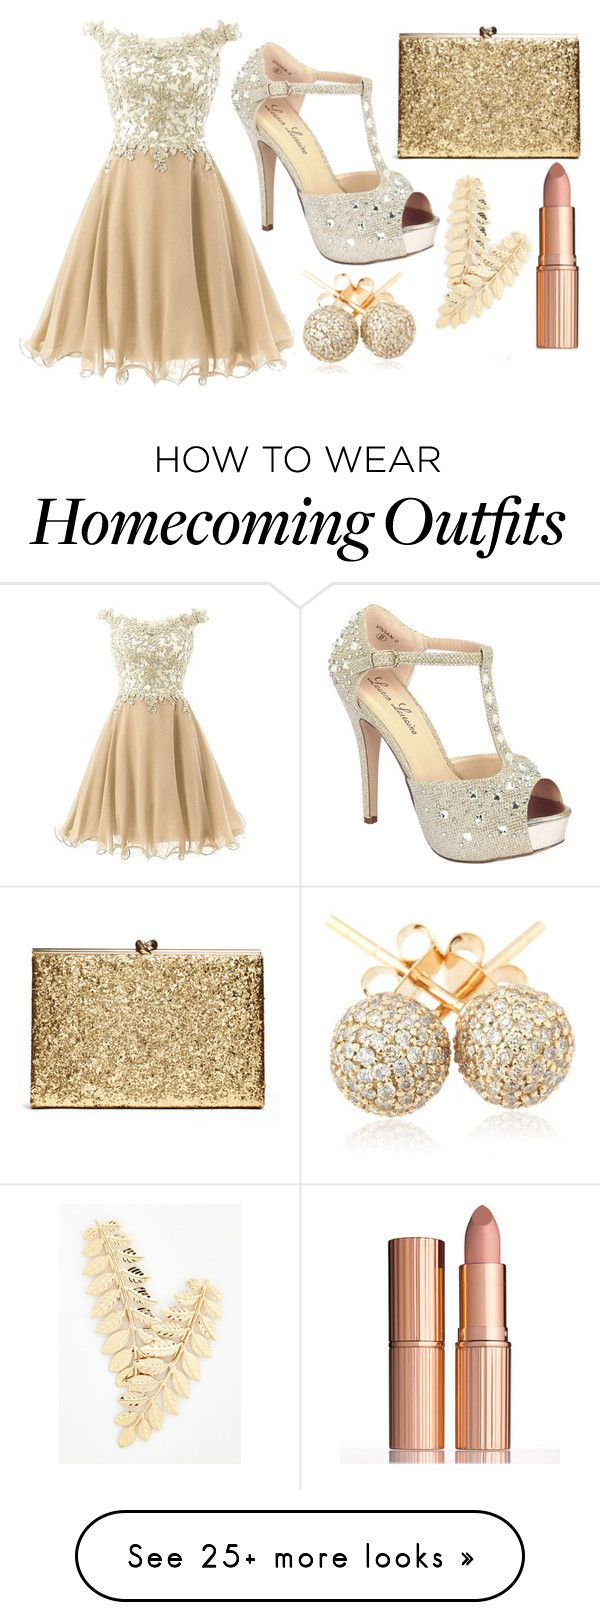 """Prom"" by brooky338 on Polyvore featuring Lauren Lorraine, Loushelou and Charlotte Tilbury"